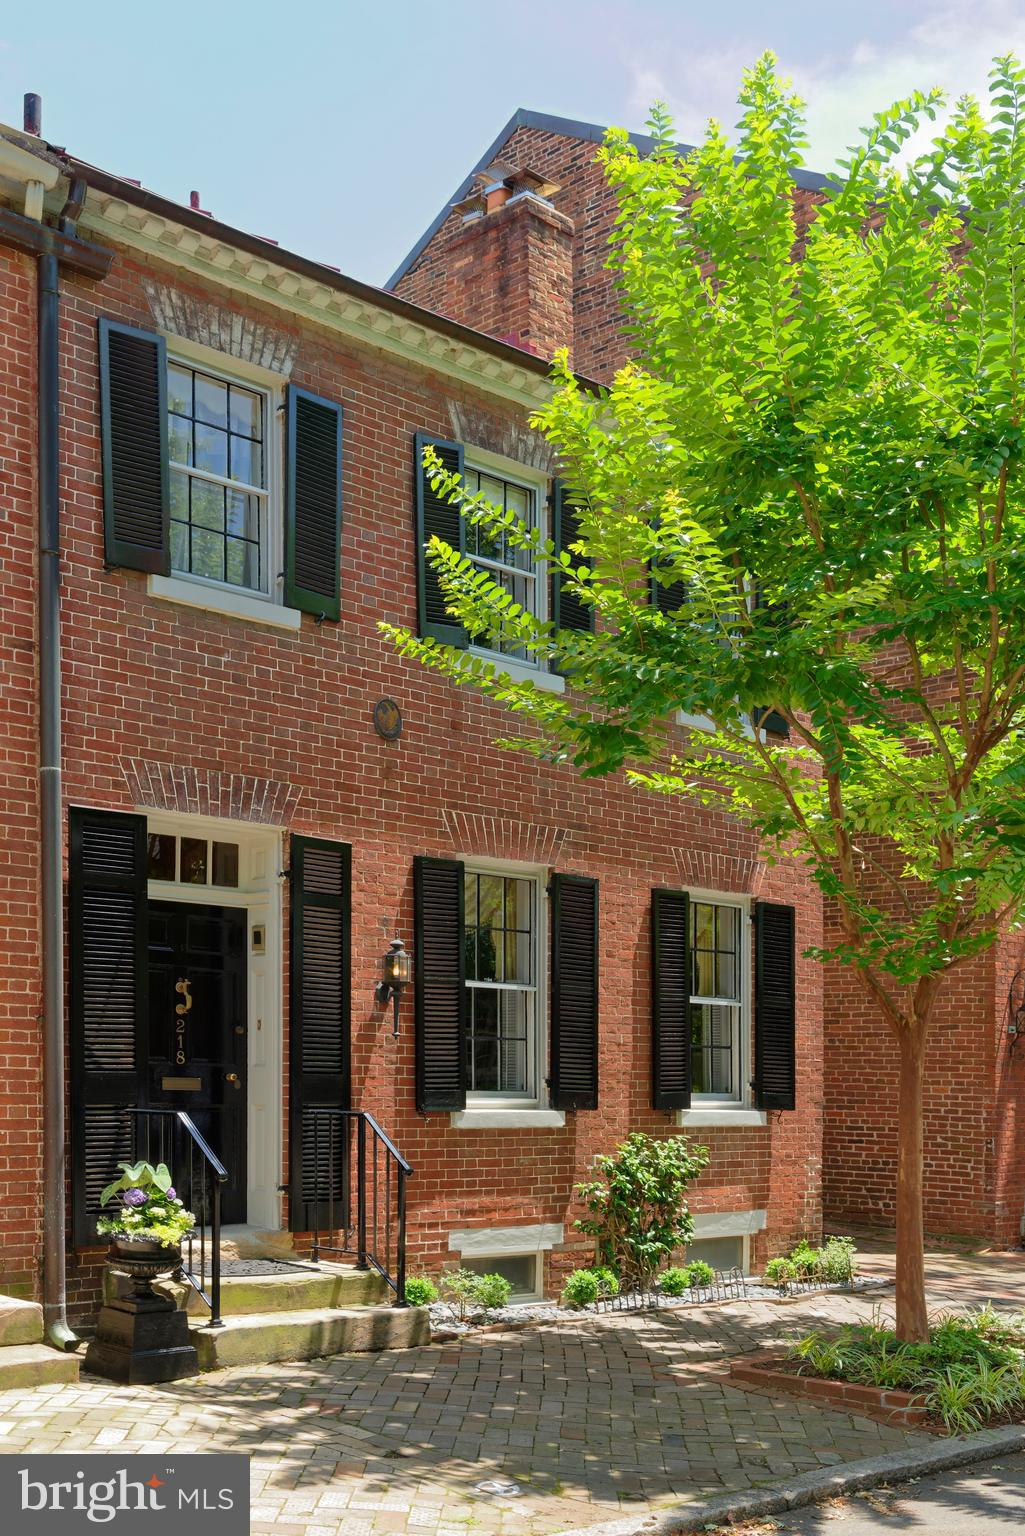 218 South Royal Street enjoys a storied provenance and prime location right in the heart of Old Town. Built in 1800, by Reuben Johnston, who built 214, 216 and 218 South Royal, the charming brick home sits on one of Alexandria~s original town lots, 1 1/2 blocks off King Street, a commercial street since the 1800's.218 is the largest of the 3 houses and the only one that~s semi-detached, now with parking on the south side. It is also one of the first thousand houses in Alexandria with running water! Back in the day, a stable was situated behind 218 and 216. Horses walked down the path between 218 and 220 (now a side garden/inner courtyard for 218 plus off-street parking) to access the stable in the rear.One of the early owners of 218, circa 1844, was William Wallace Adam, a silversmith. With its rectangular shape and 2 stories, the house exemplifies the Federal style of the 1820-1830's, but its dentil cornice along the roof line and transom ornamentation above the entry door are reflective of the Georgian period of architecture. Lovely flower boxes line the windows, graced by classic shutters. Many original details of this gem include an original front staircase, original floors throughout, original solid 6-panel entry doors and casings in the living and dining room,plus 2 original fireplace mantles in both rooms supported by reeded pilasters. Old meets new in the recently renovated eat-in kitchen with wood cabinetry, a furniture island, copper sink, and bow window facing the inner courtyard with fountain. Adjoining is a sunny family room with built-in wood cabinets flanking the raised fireplace, and a full bath. A small light-filled room with skylights and 3 windows beyond the family room, perfect as an office,overlooks the pool and plantings. Upstairs await 4 spacious bedrooms and 3 full baths. The master suite has a fireplace,window seat, his and her bathrooms, and separate newer private staircase to the first floor. Storage is very extensive for a historic home. 